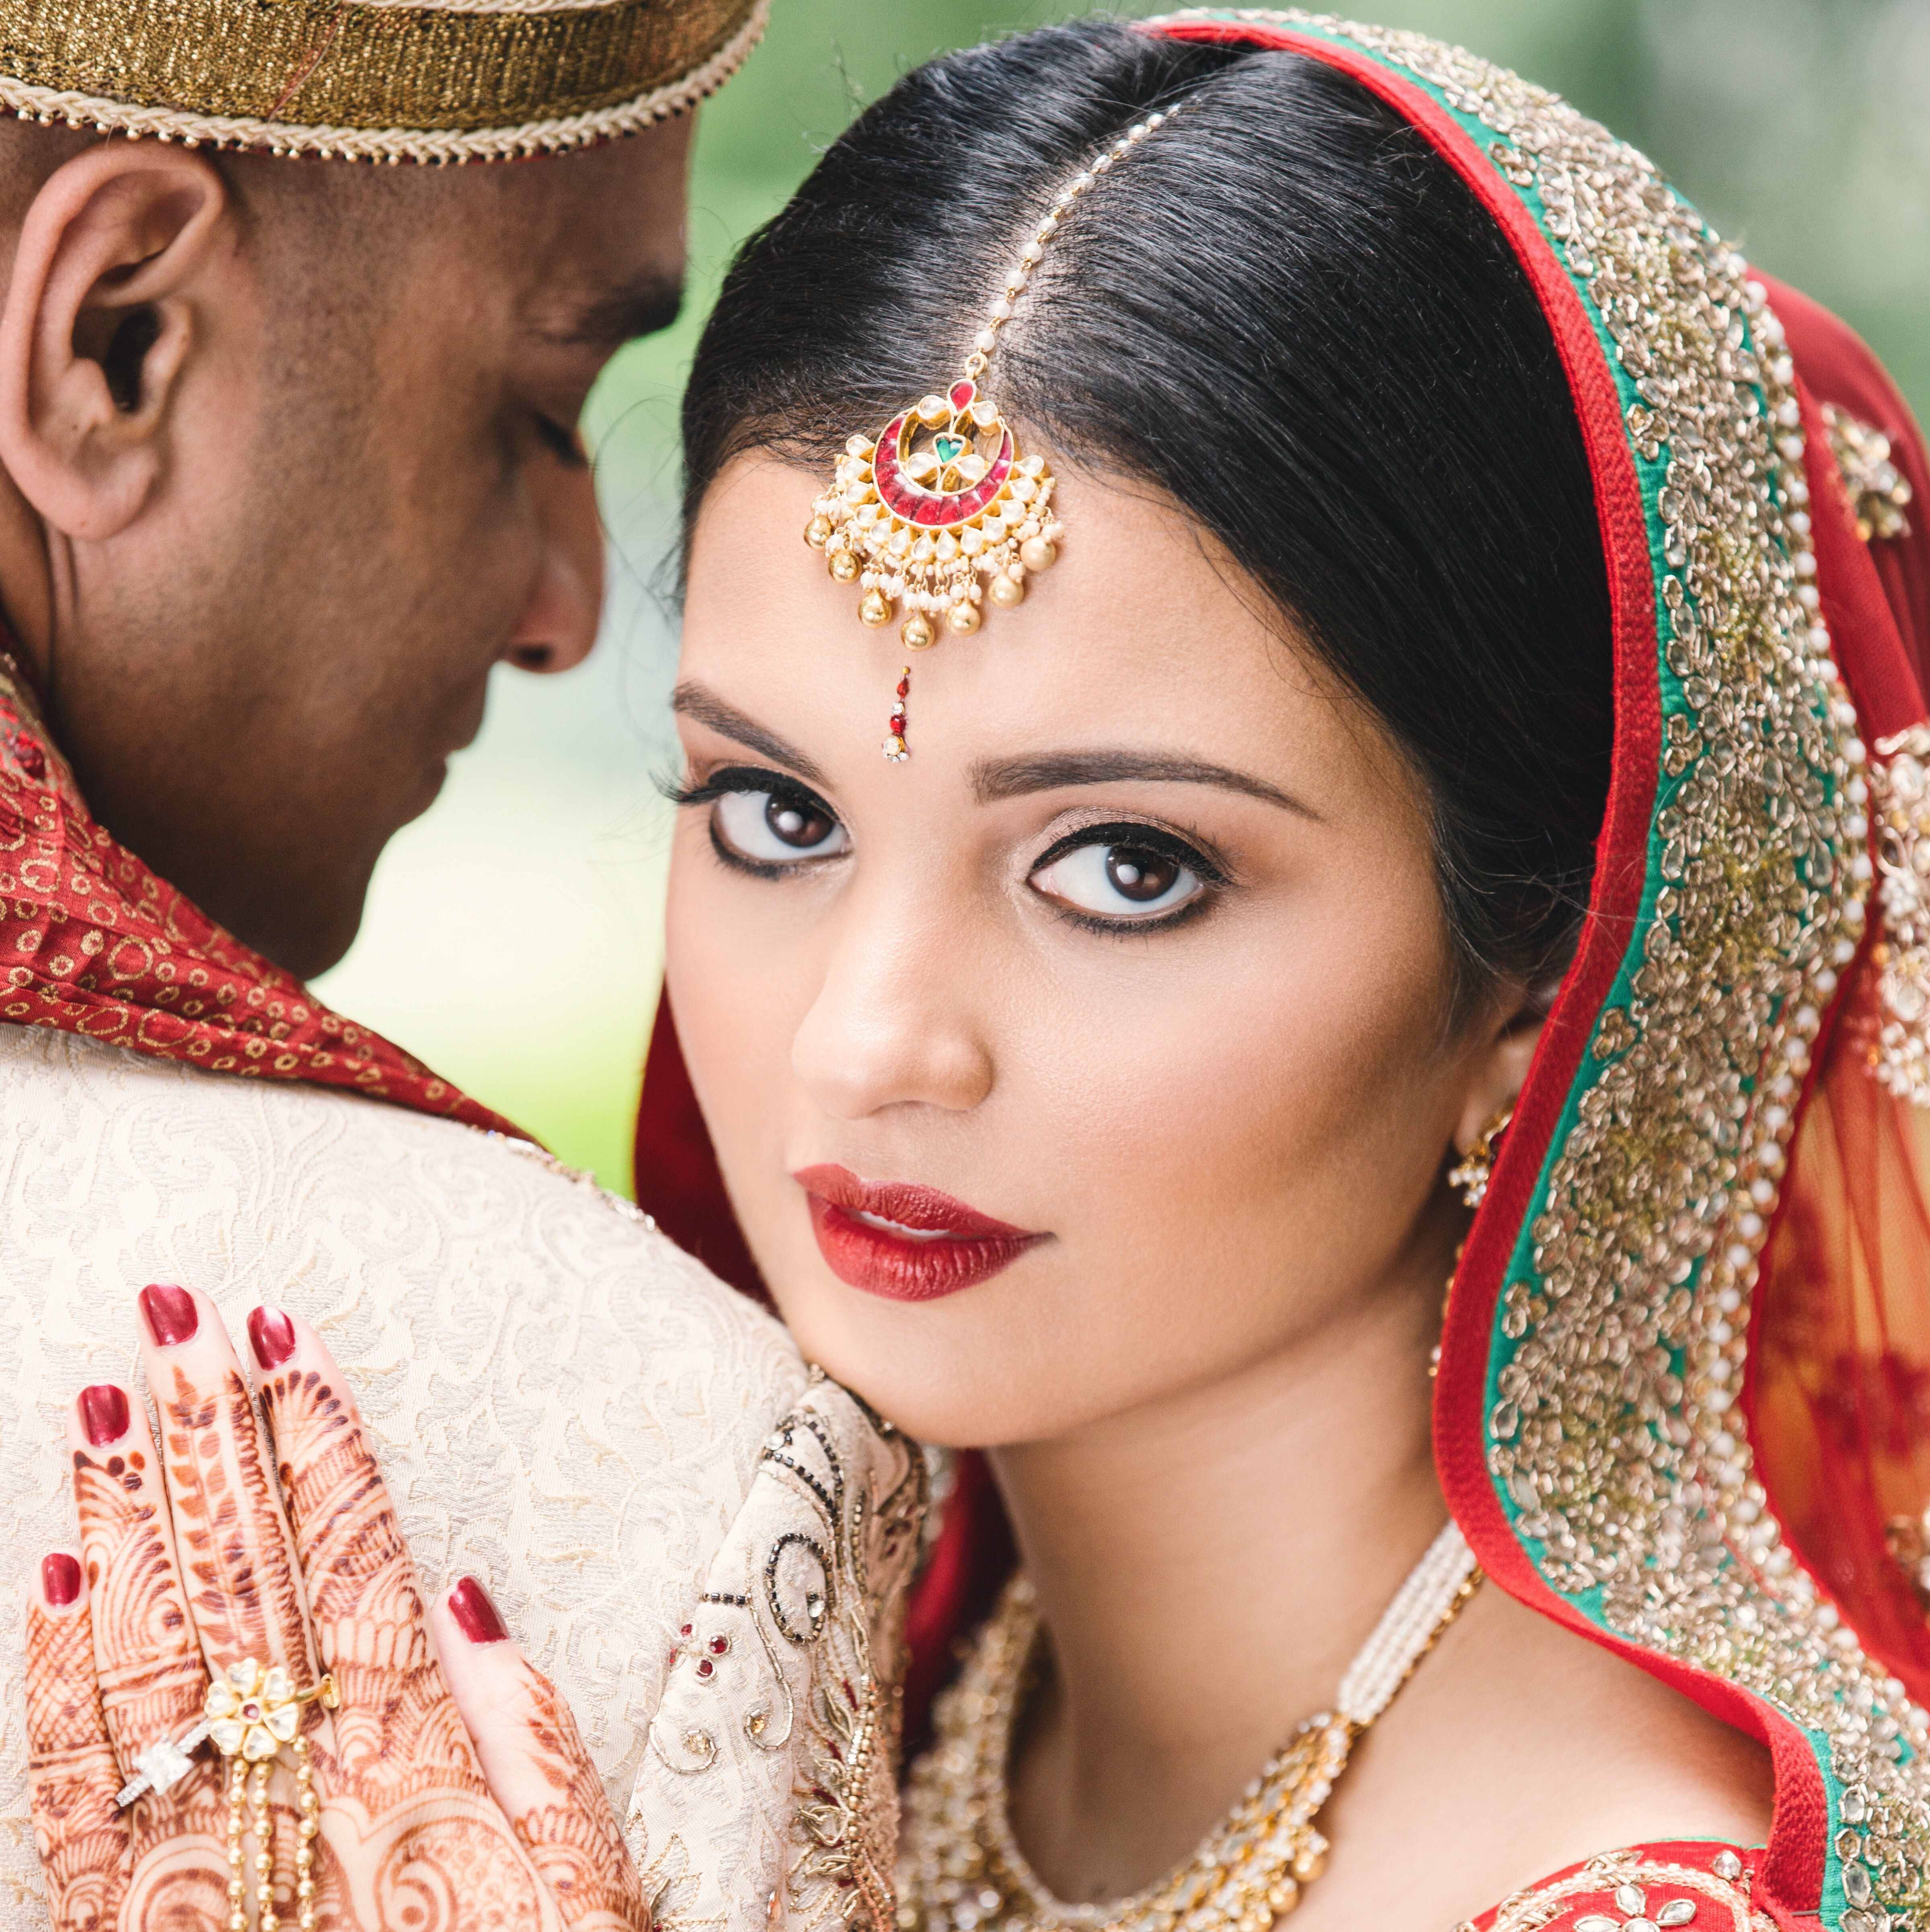 Red is one of the most stunning wedding day colors and the